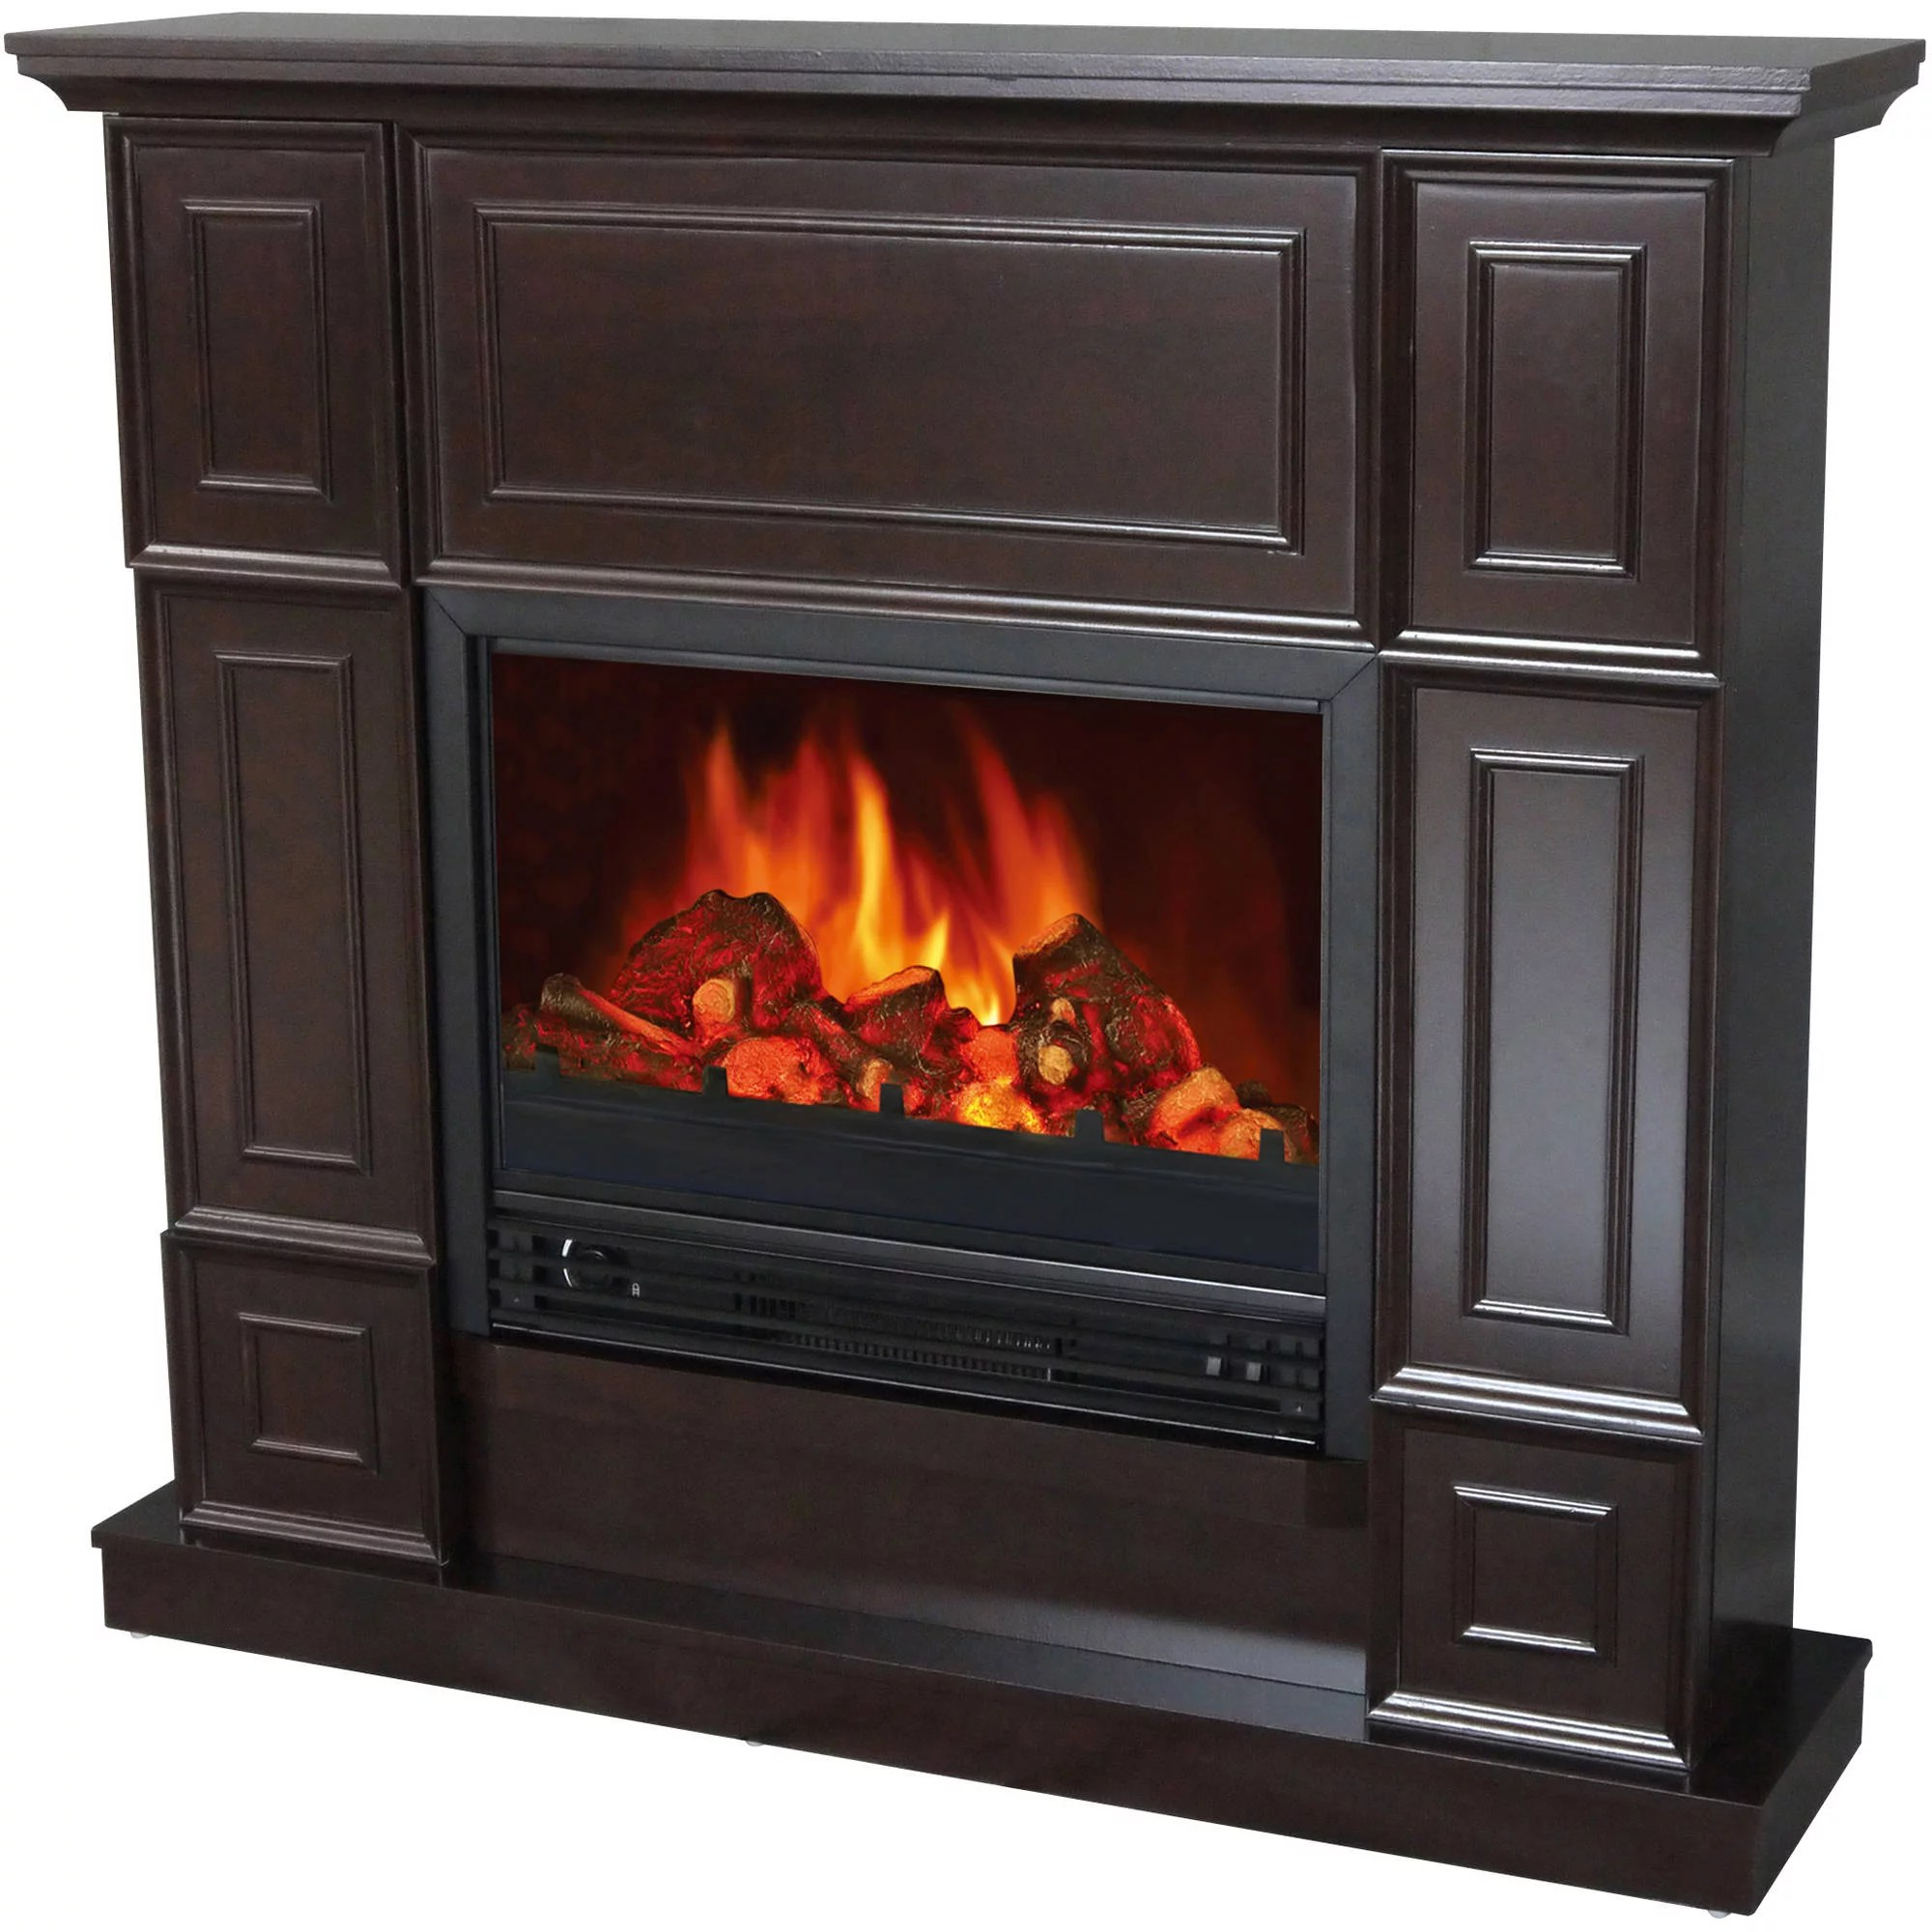 Electric Fireplaces For Sale At Walmart 35